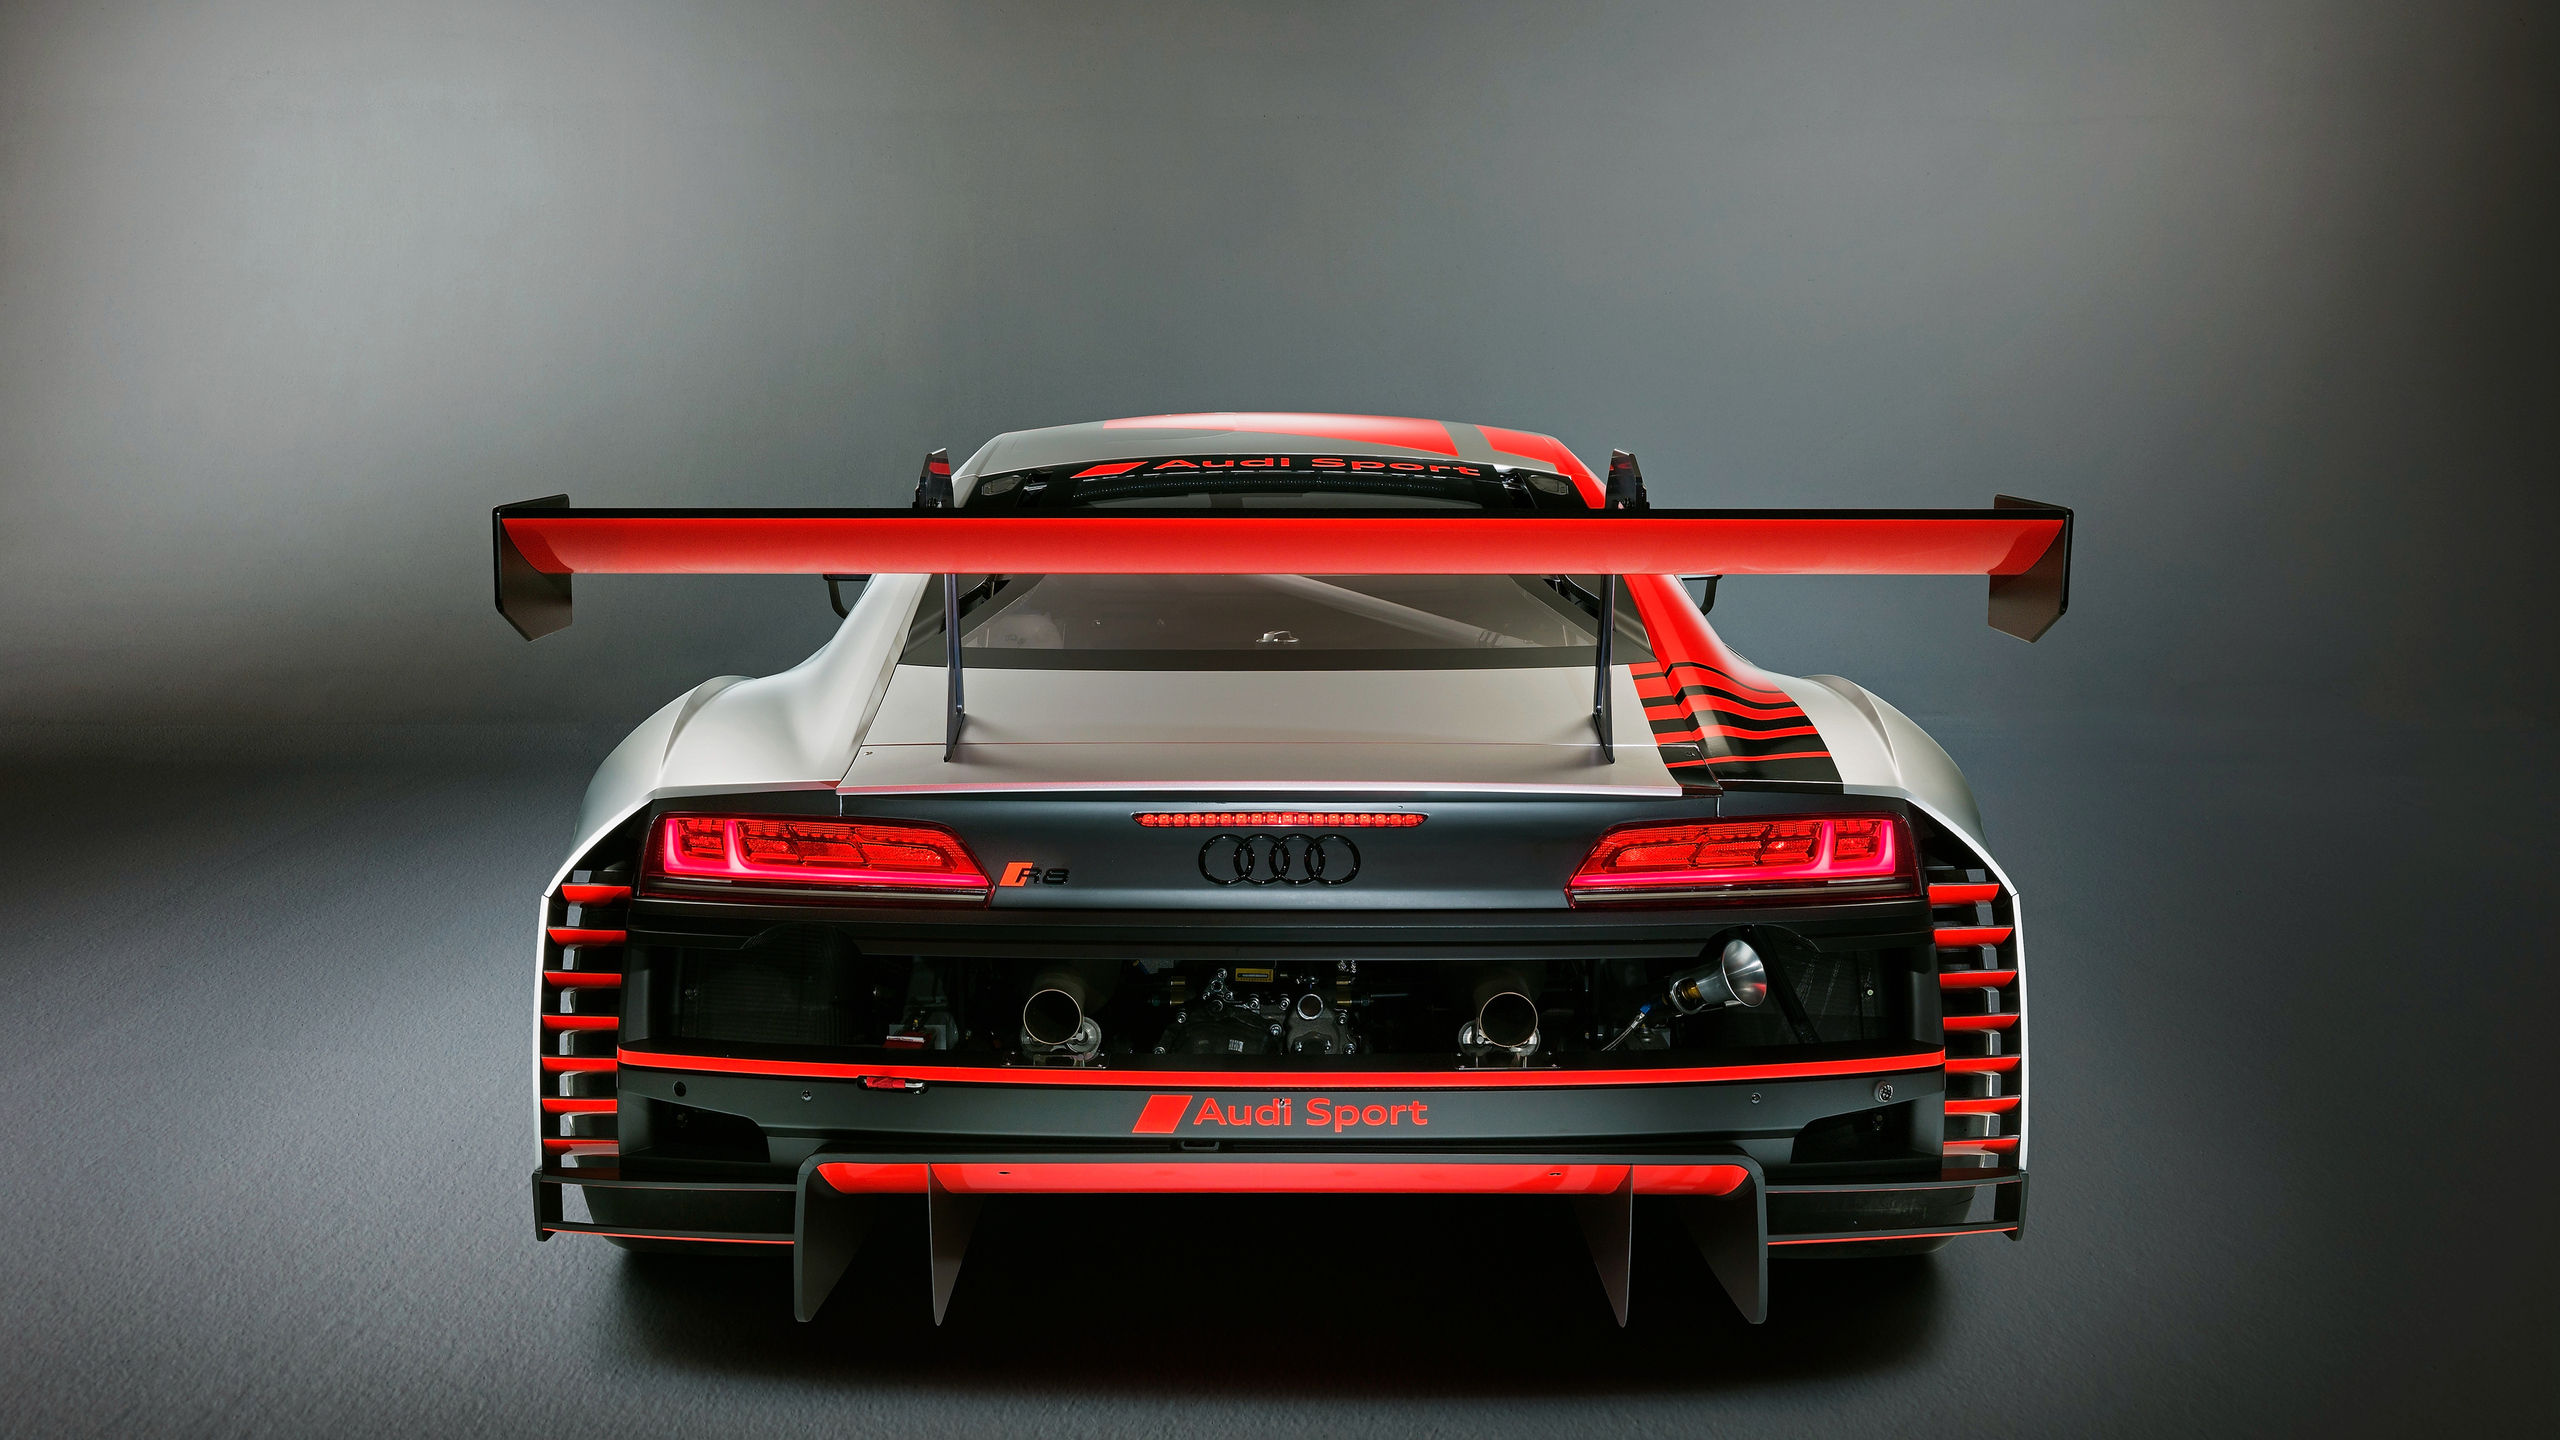 2560x1440 Audi R8 LMS 2019 Rear 1440P Resolution HD 4k ...